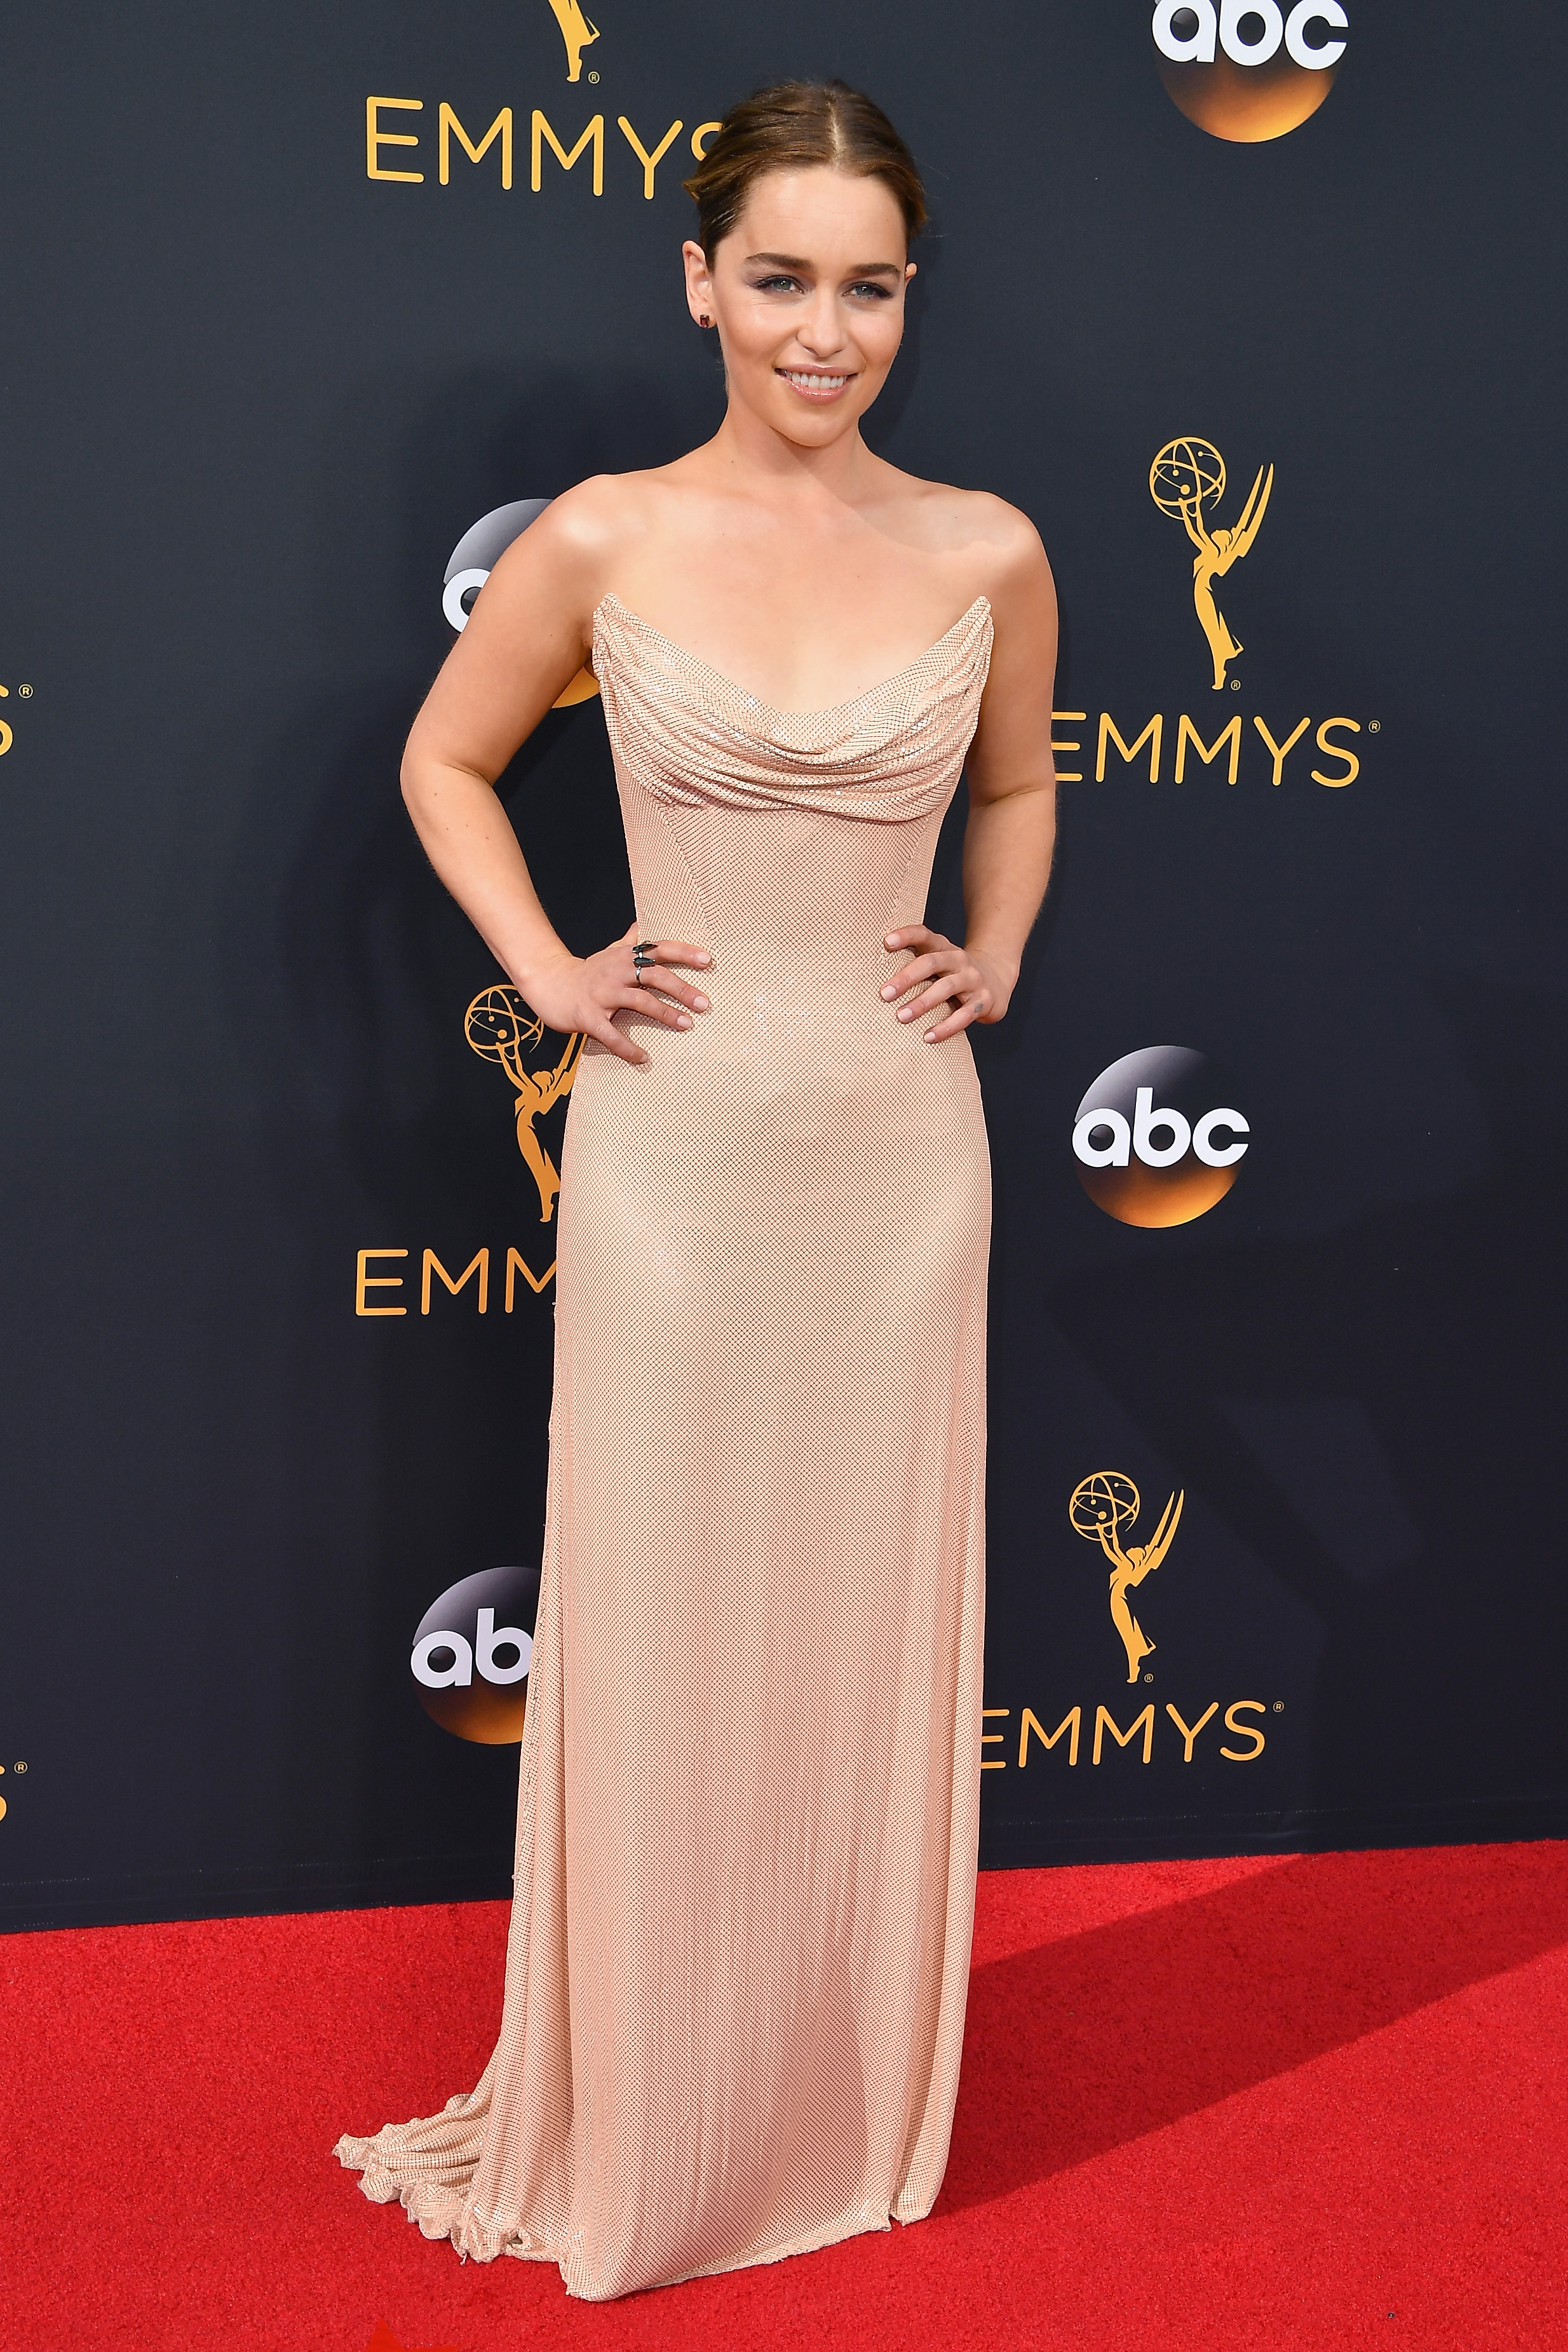 Emilia Clarke arrives at the 68th Annual Primetime Emmy Awards at Microsoft Theater on Sept. 18, 2016 in Los Angeles.